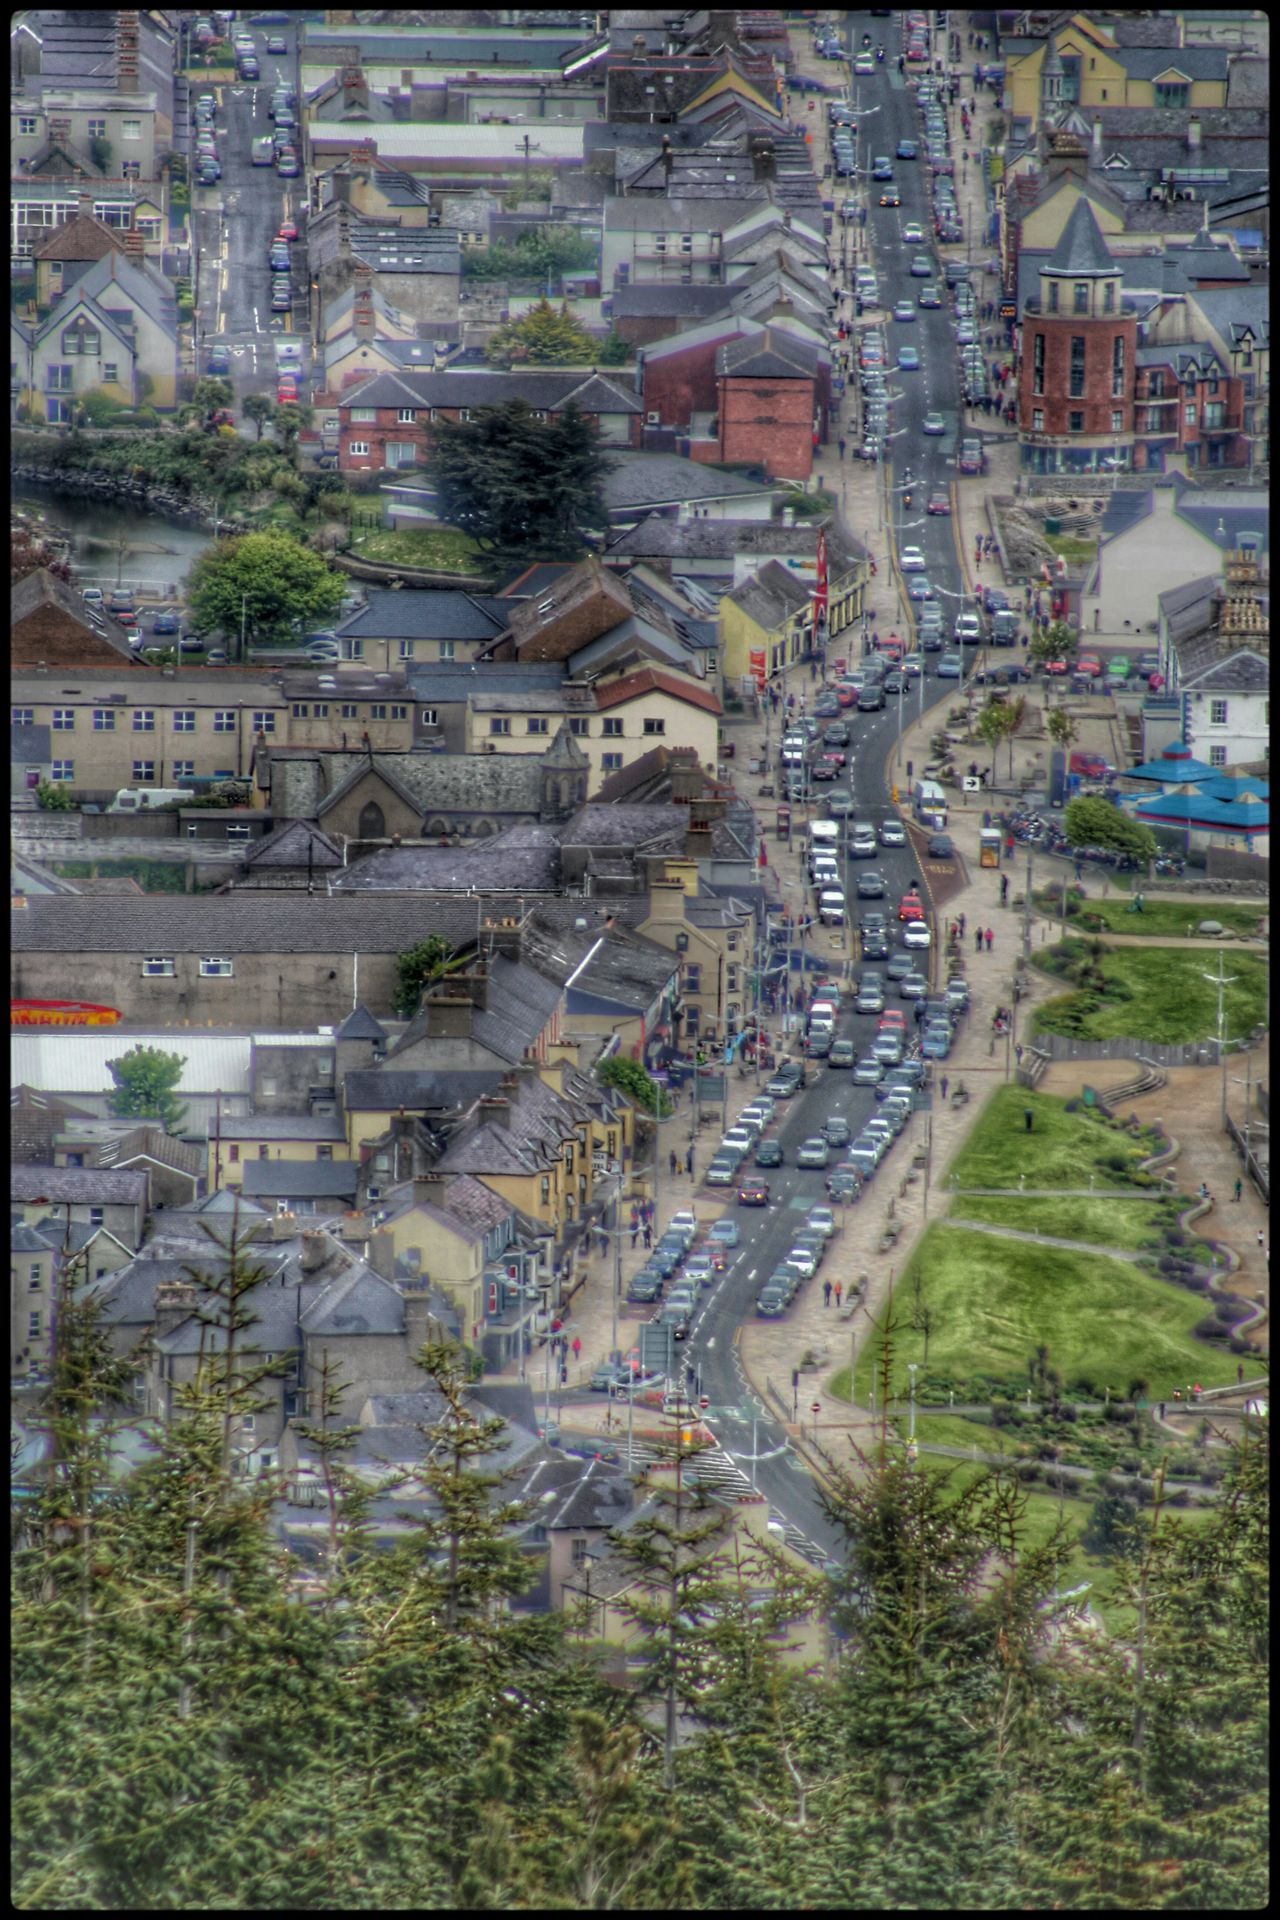 Town Birds Eye View Newcastle County Down Street From Above  Street From Above Map EyeEm Best Shots Our Best Pics Exceptional Photographs EyeEm Gallery Best Of EyeEm Pivotal Ideas Northern Ireland Traffic Busy Street Streetphotography Hustle And Bustle A Bird's Eye View Urban Exploration Town TOWNSCAPE People And Places Embrace Urban Life Adapted To The City